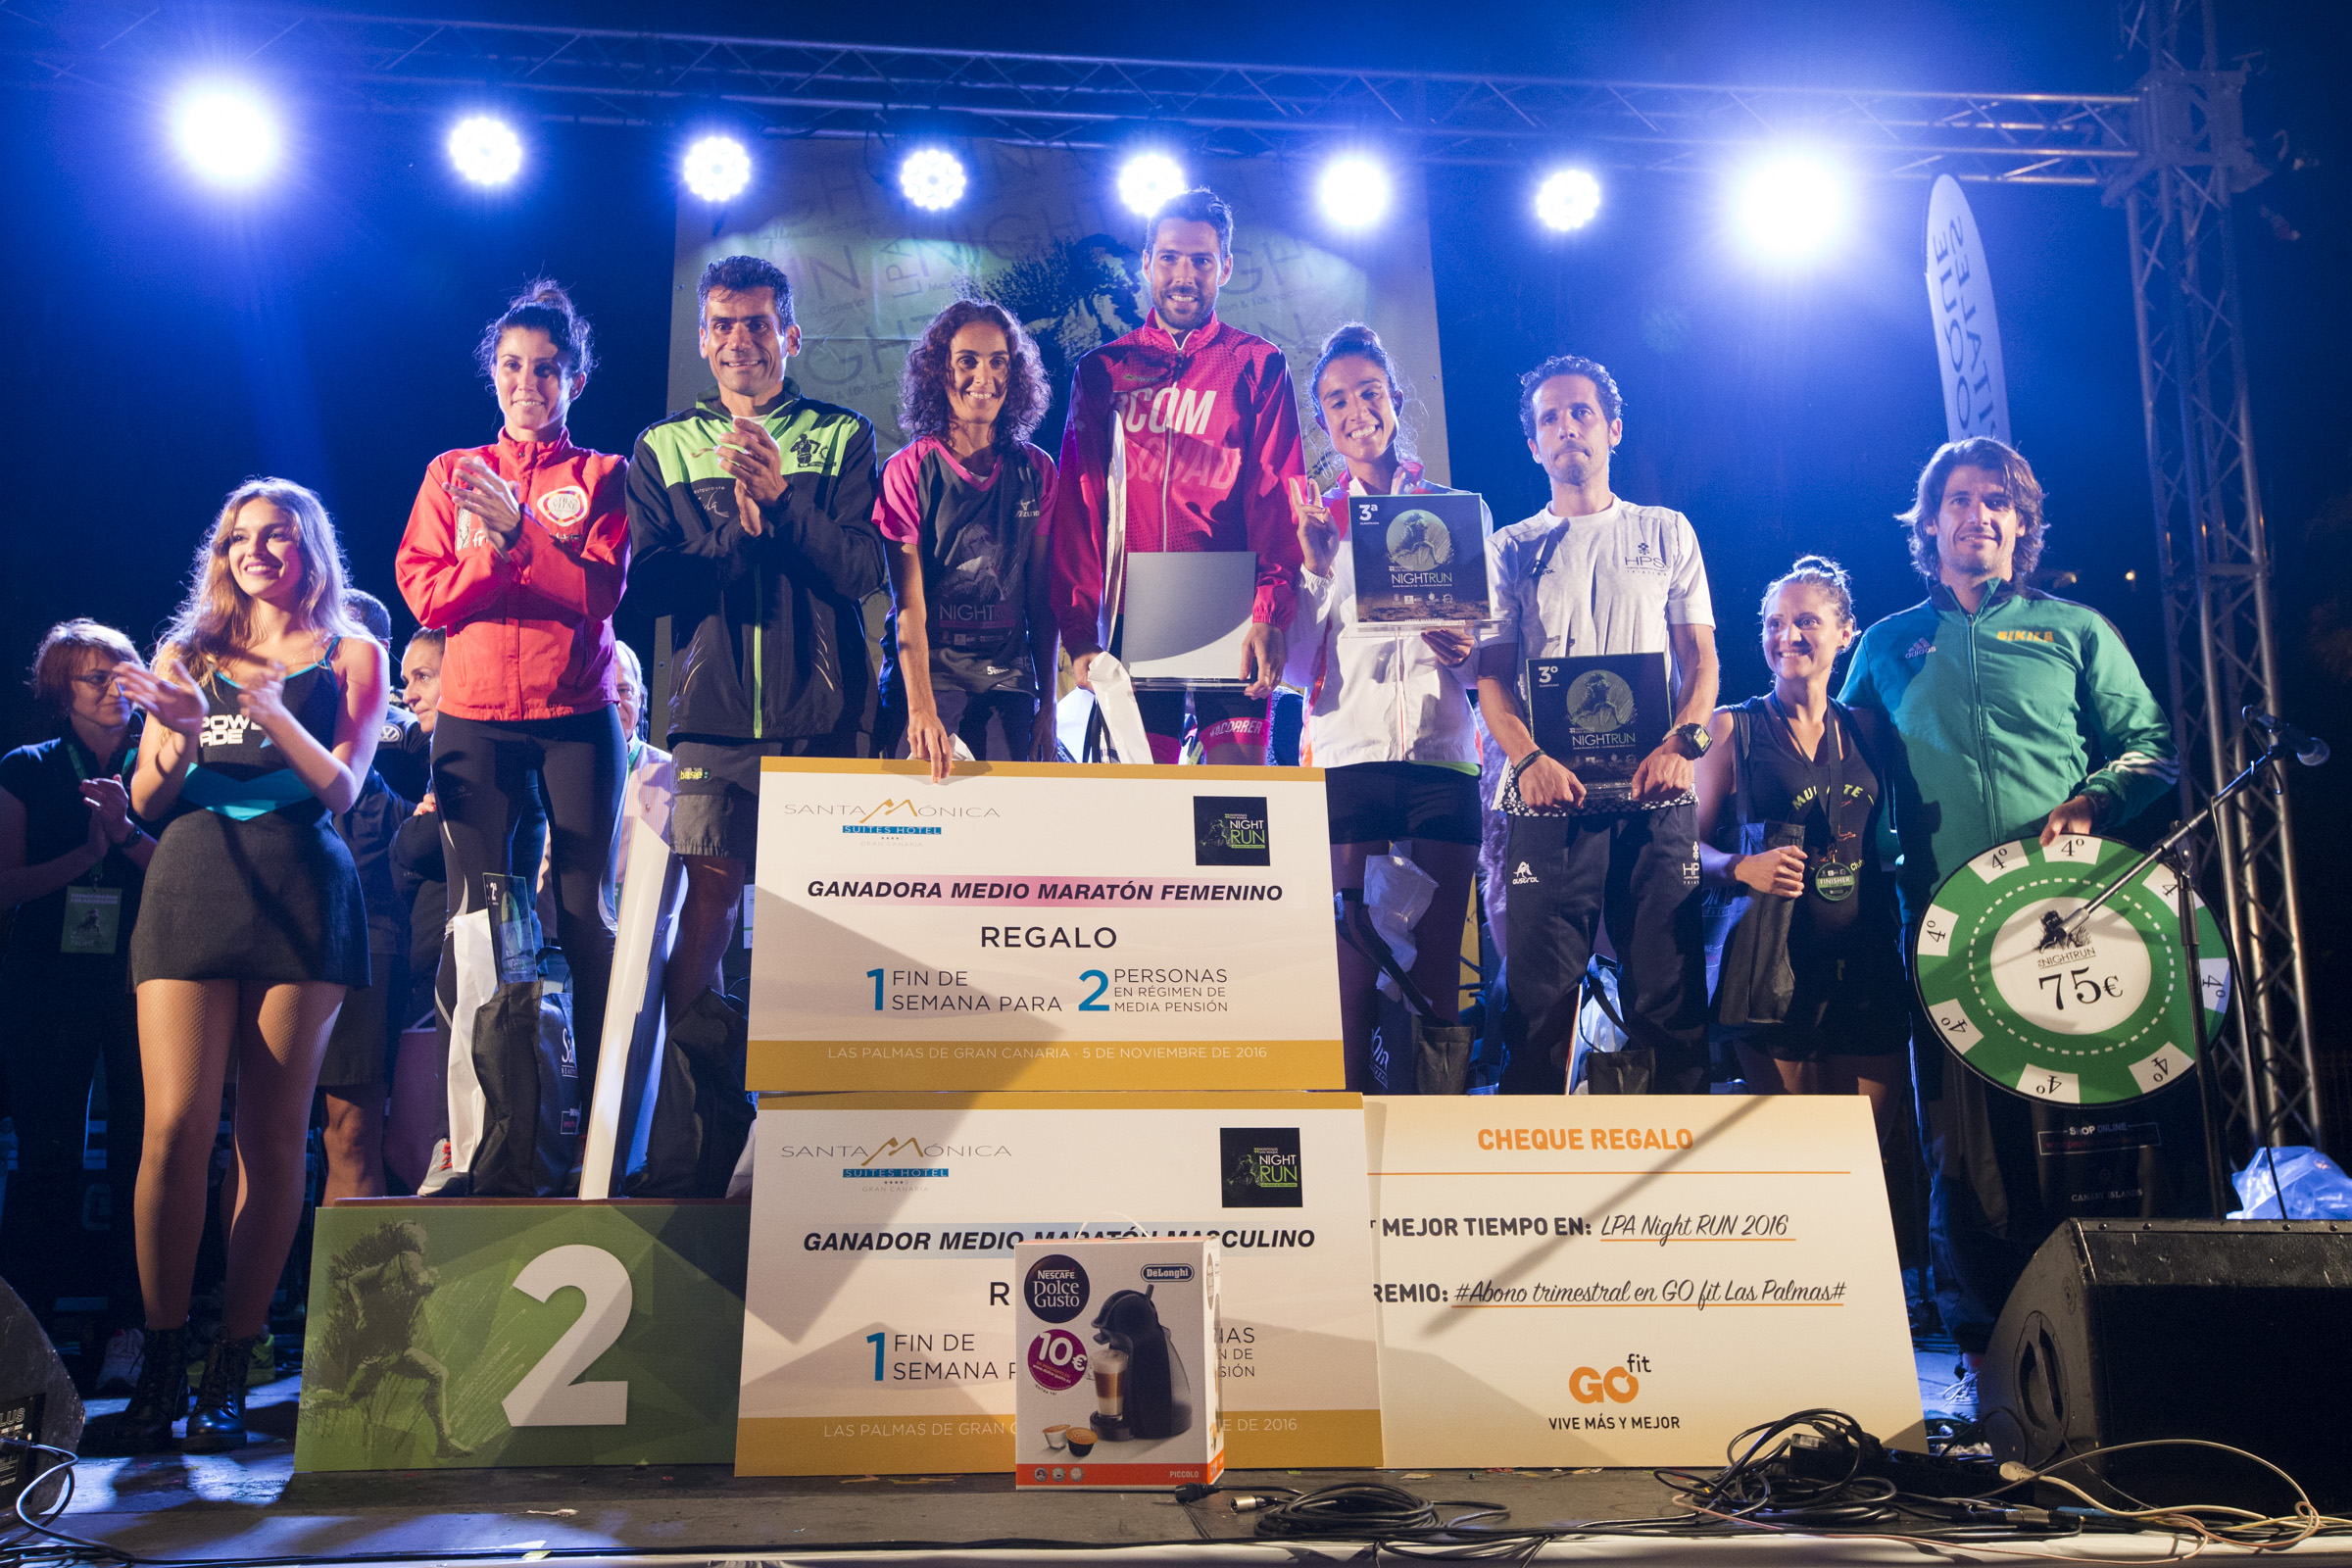 ganadores-hrs-night-run1